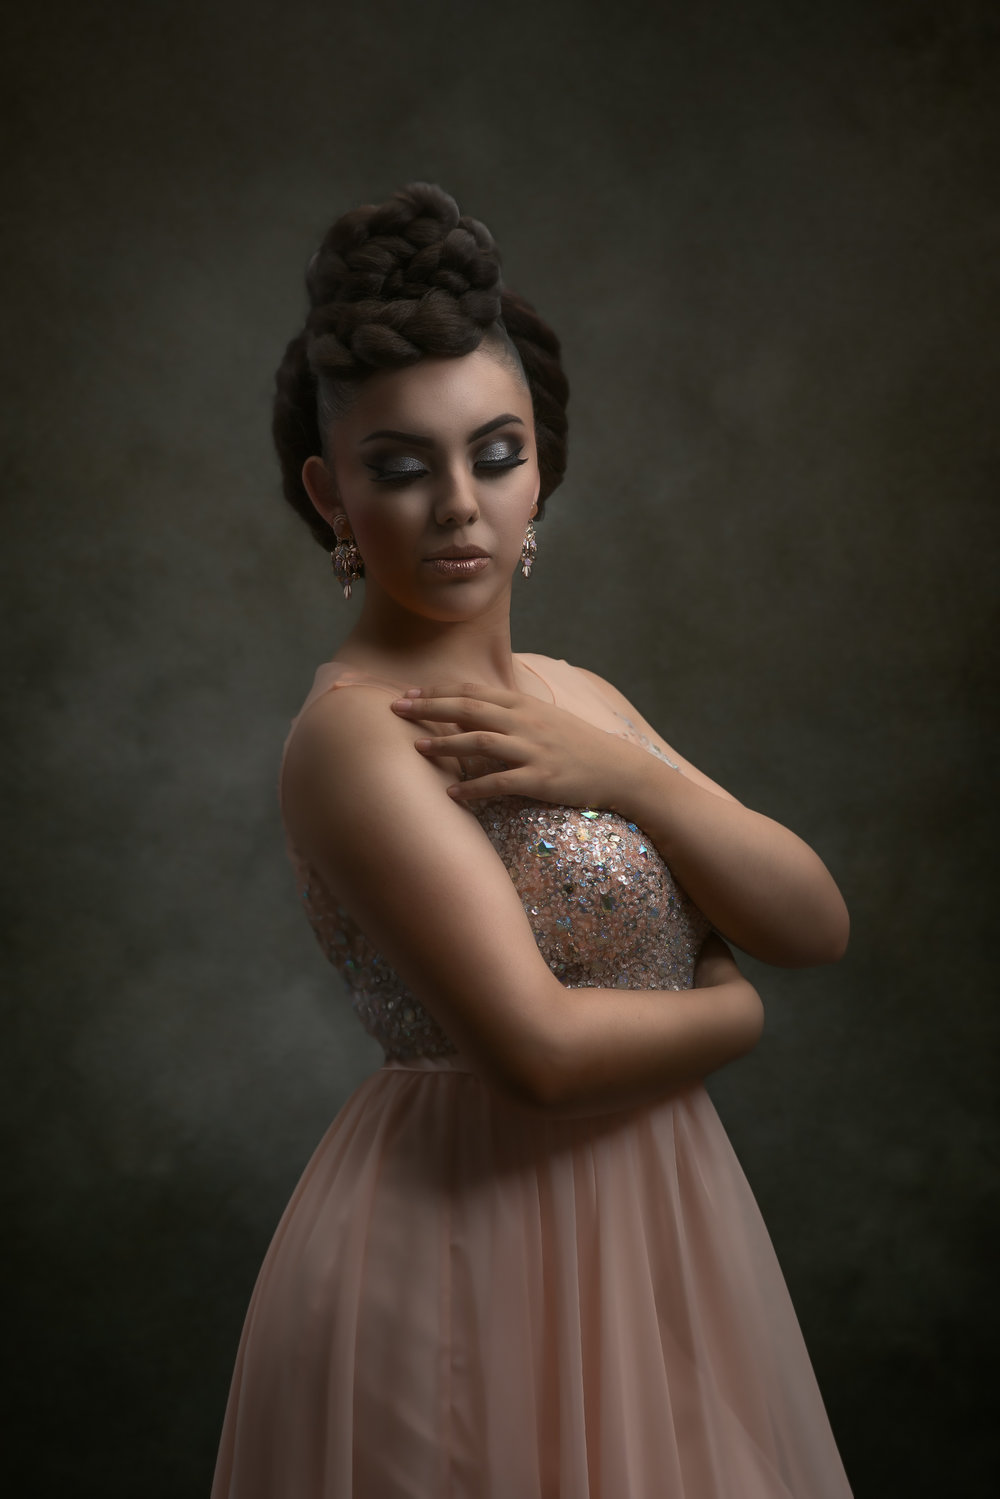 Edge Portraiture - Atlanta Gwinnett Fashion Photography (3 of 13).jpg